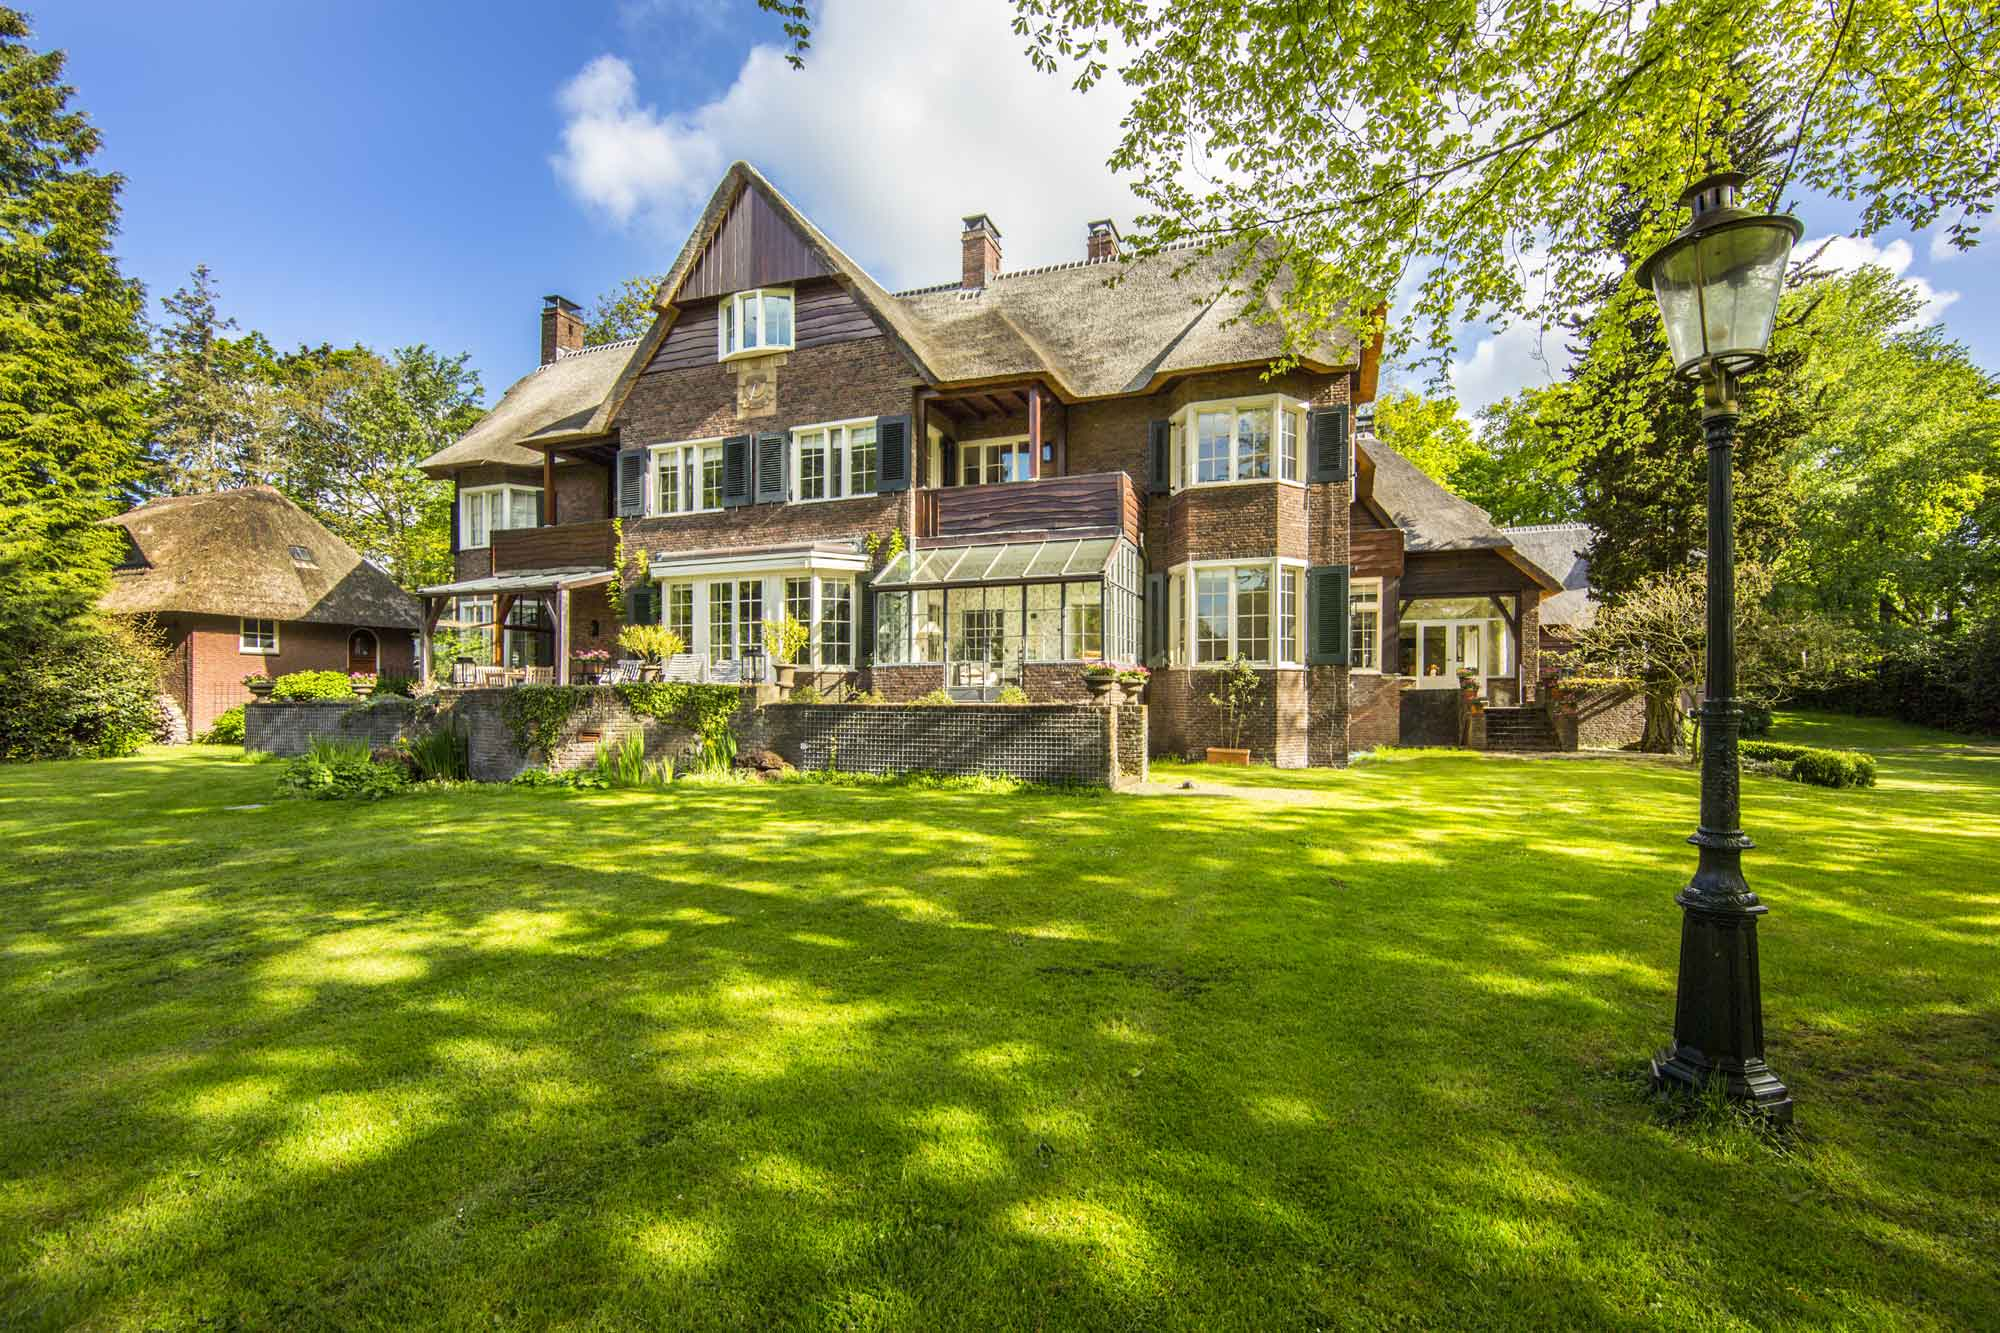 Villa Blauwduin (Blue Dune) is a grand 1920s country estate in the leafy village of Aerdenhout, one of the Netherlands' most coveted areas. There are numerous thatched residents which provide luxurious private copious accommodations extended family or guests.